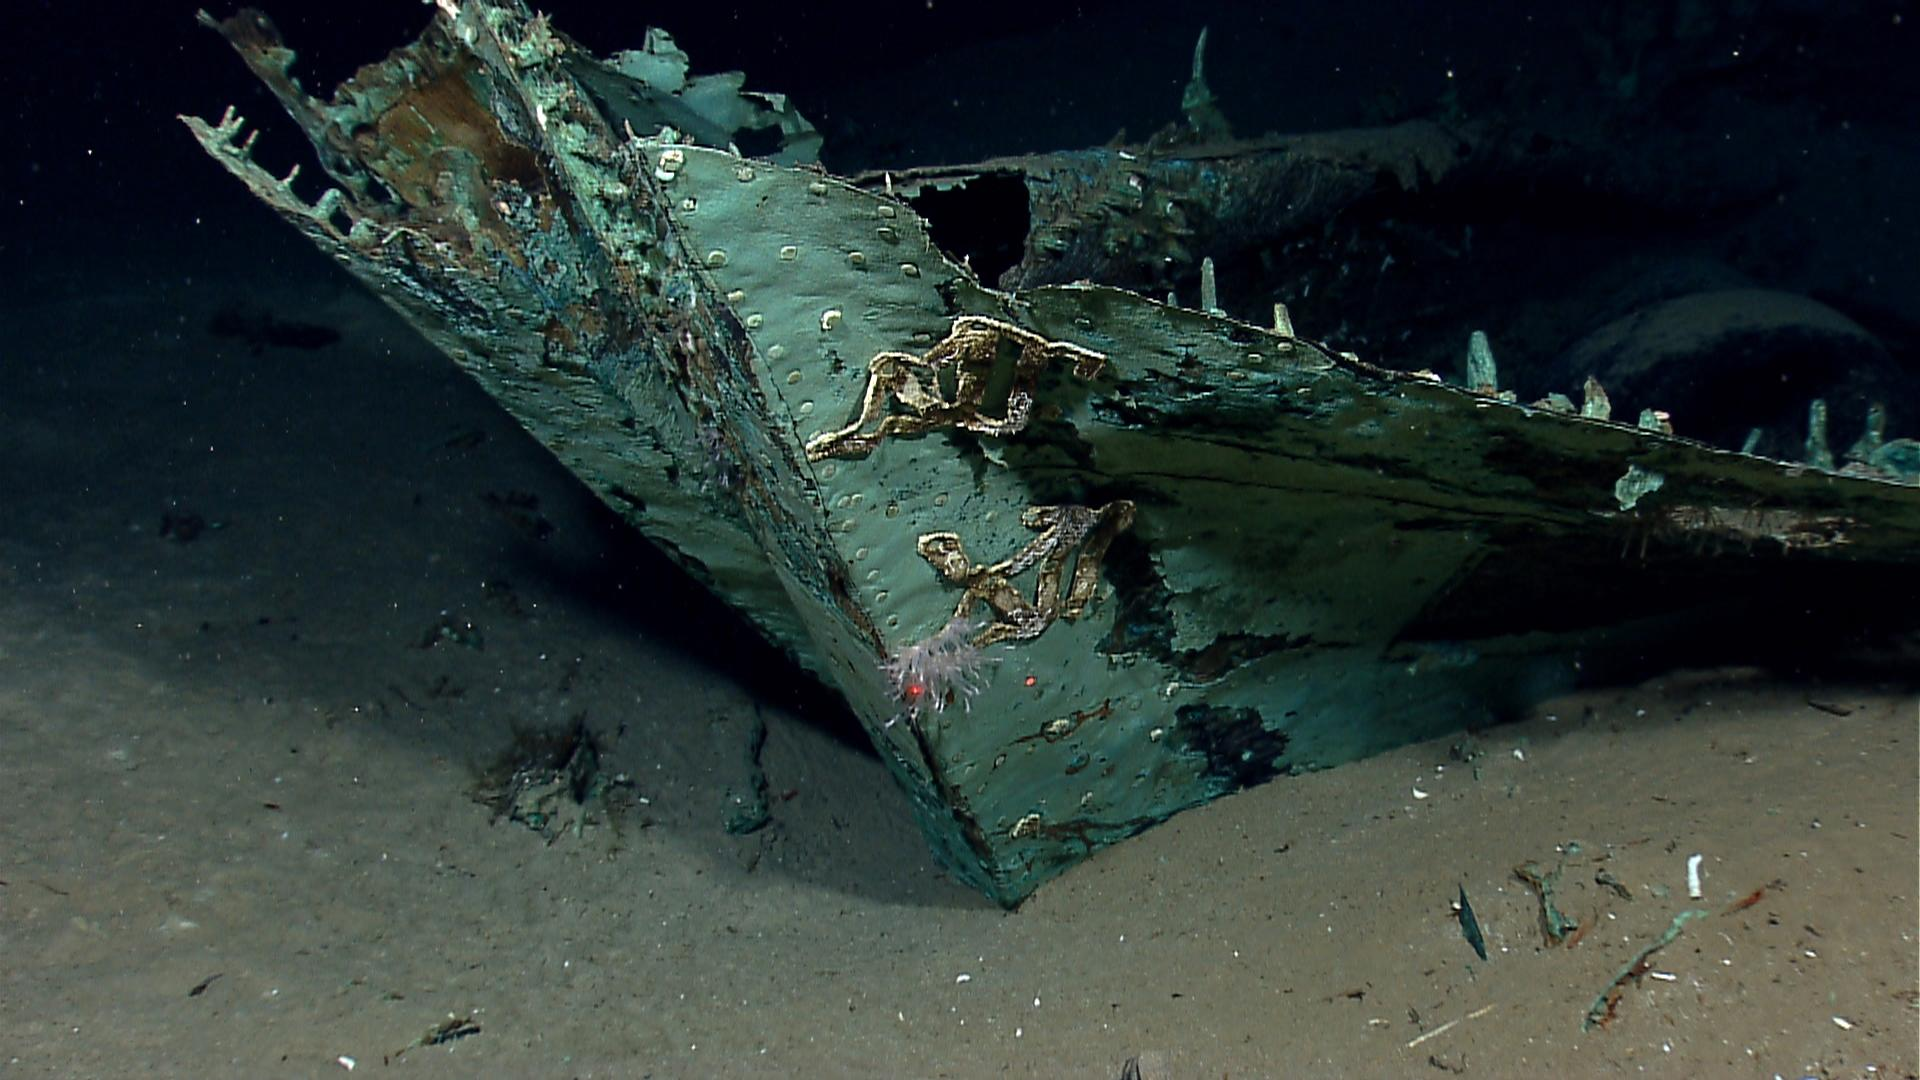 This photo provided by the NOAA Okeanos Explorer Program shows oxidized copper hull sheathing and possible draft marks visible on the bow of a wrecked ship in the Gulf of Mexico about 170 miles from Galveston, Texas. Officials with Texas A&M University at Galveston and Texas State University say the recovery expedition of the two-masted ship that may be 200-years-old, concluded Wednesday, July 24, 2013. They've been able to recover some items like ceramics and bottles, including liquor bottles, and an octant, a navigational tool. Other items spotted among the wreckage are muskets, swords, cannons and clothing. (AP Photo/NOAA Okeanos Explorer Program)